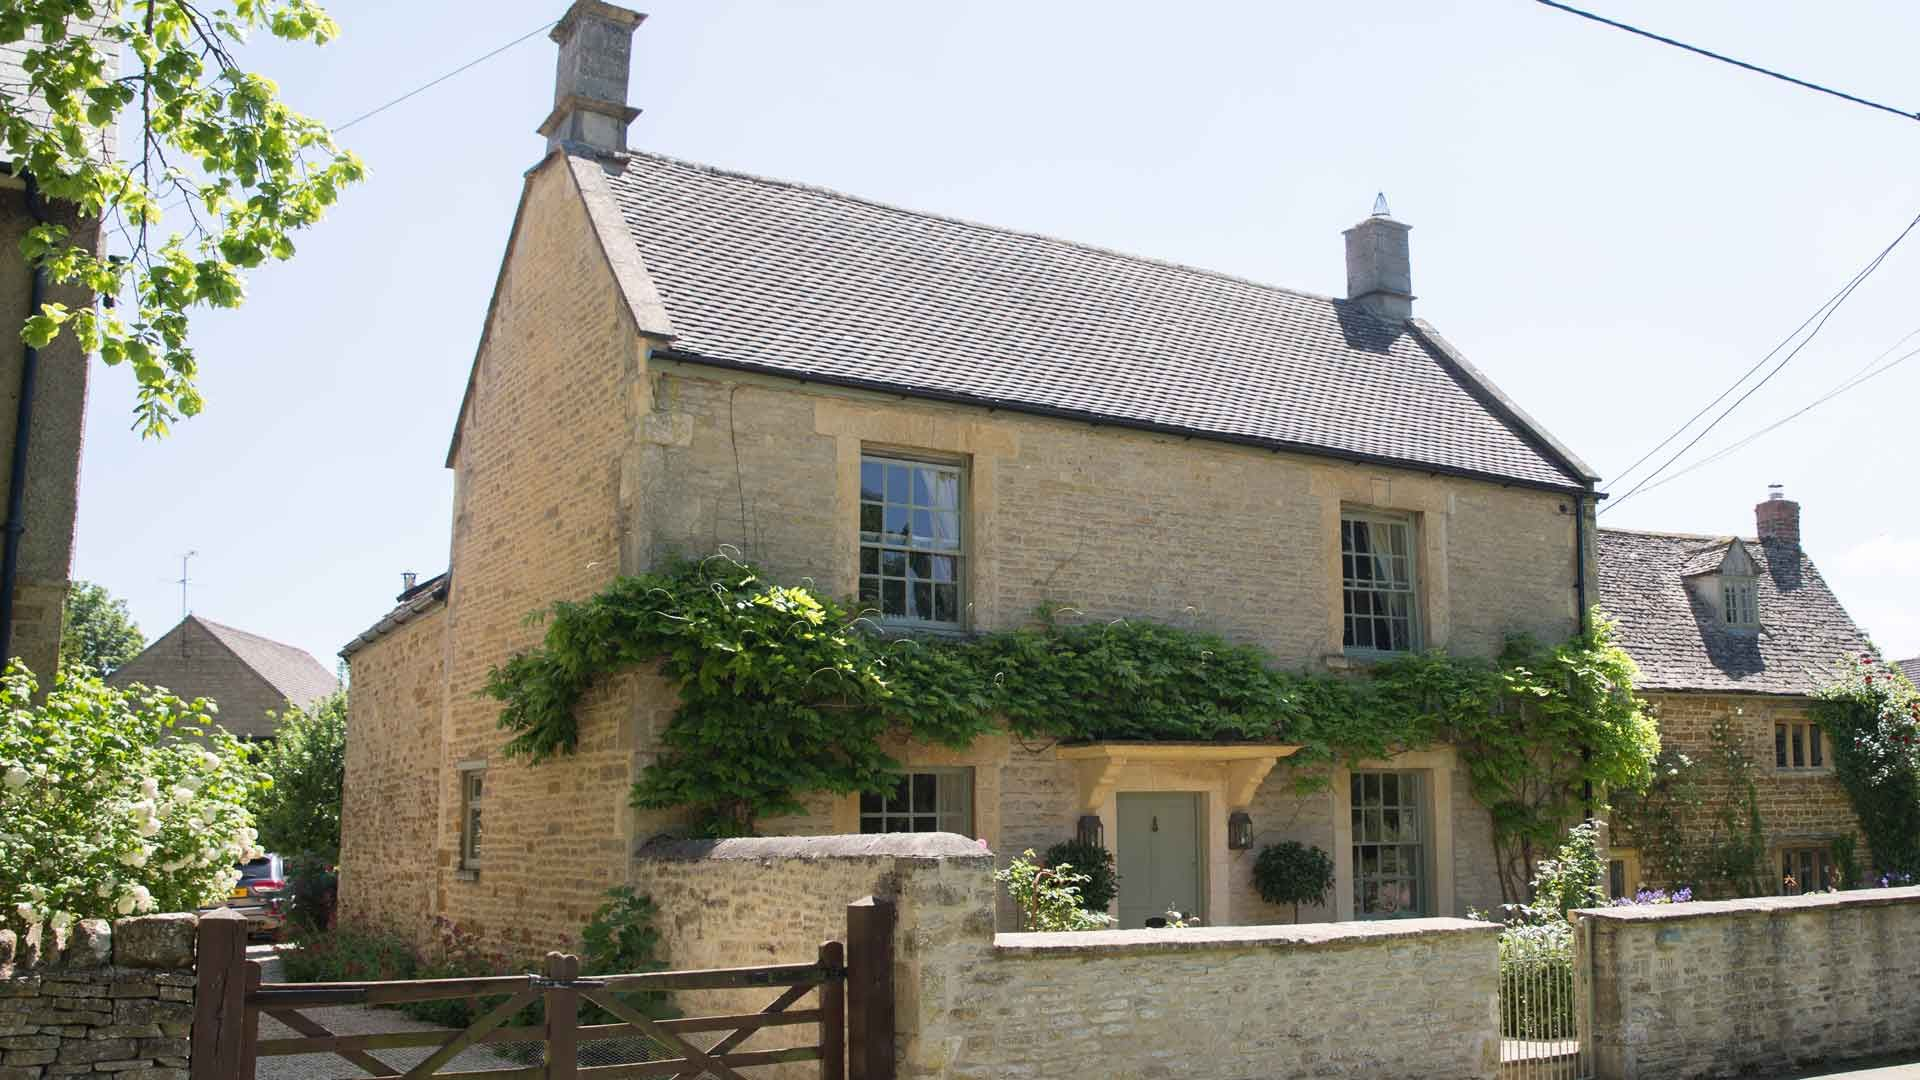 The Nook - StayCotswold